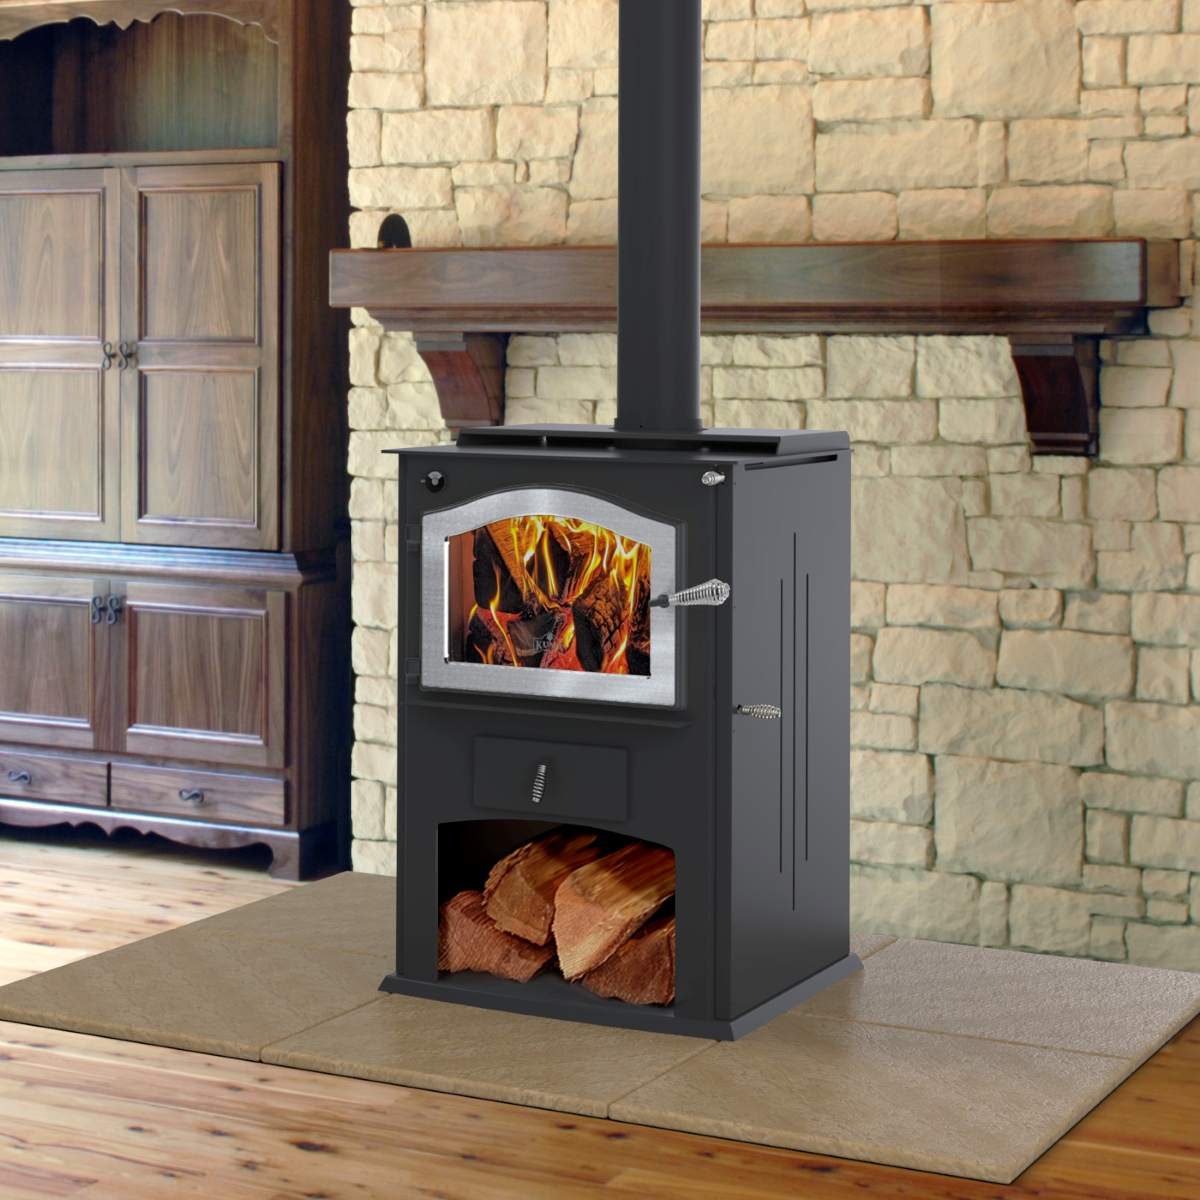 Kuma Cambridge LE wood stove, made in the USA